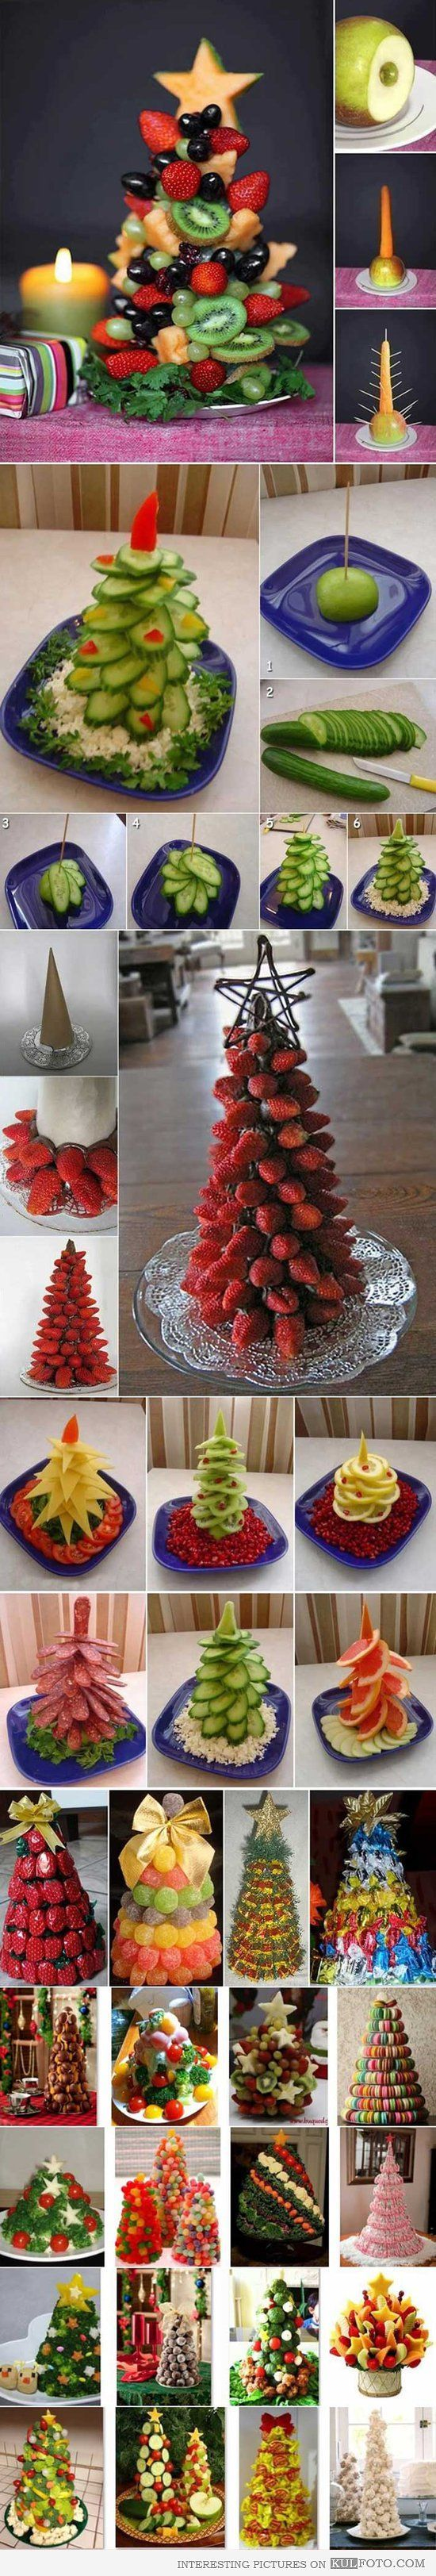 Idée déco & cadeau noël  2016  Fruit Christmas trees  Fun how-to guide